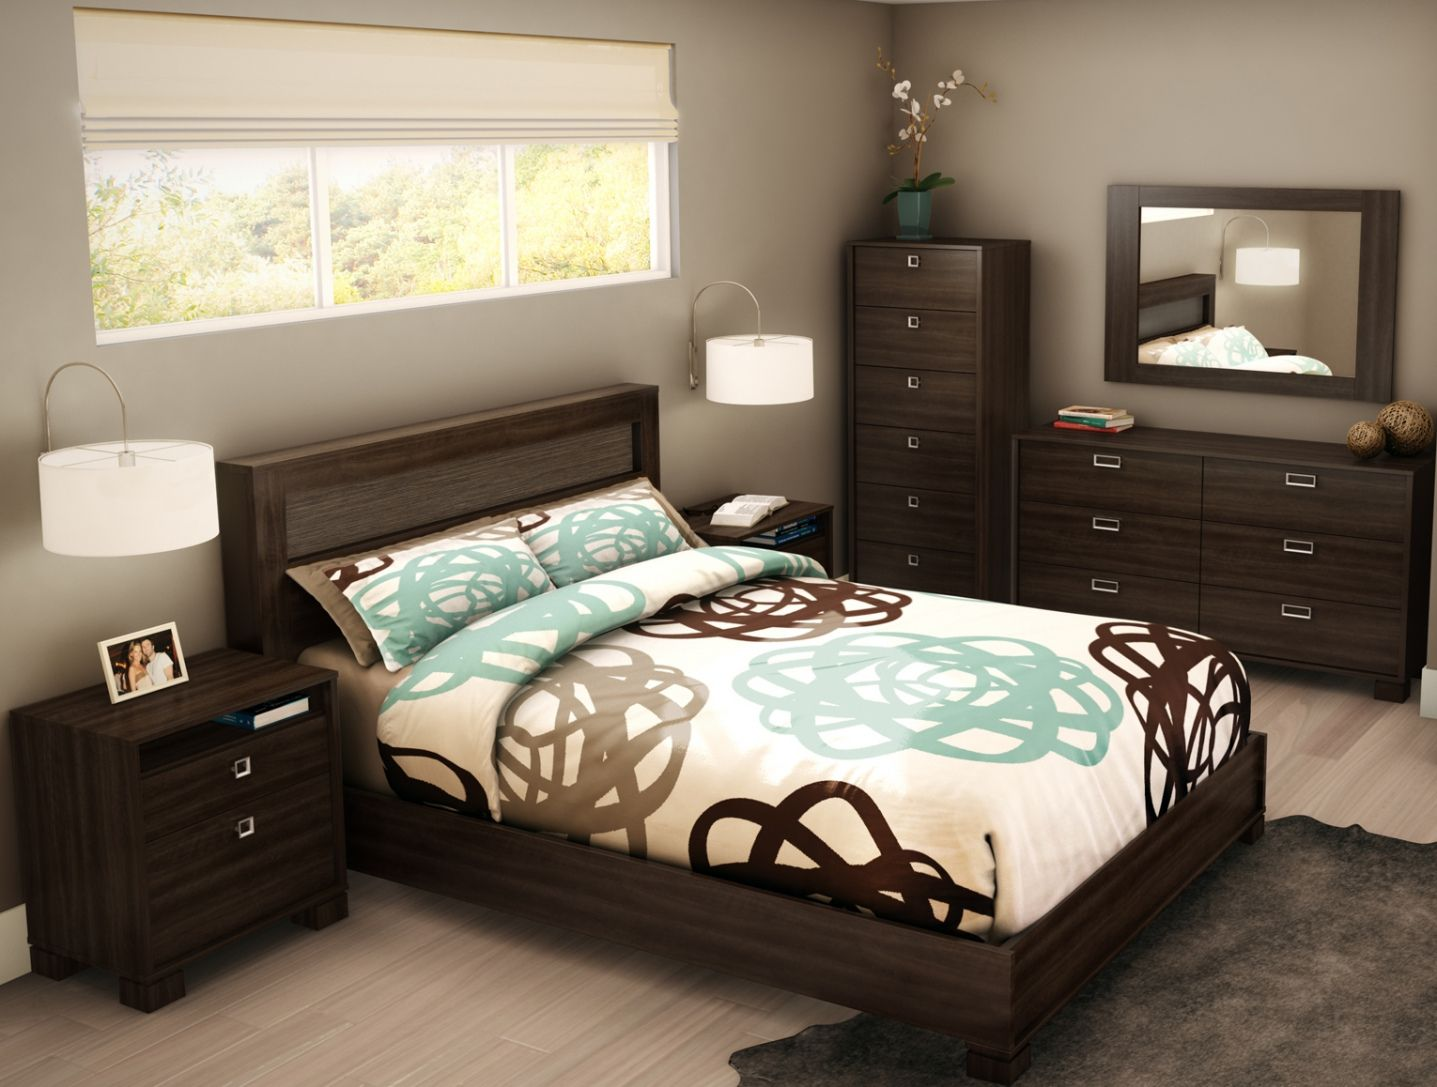 Bedroom Sets for Small Rooms - Low Budget Bedroom Decorating Ideas